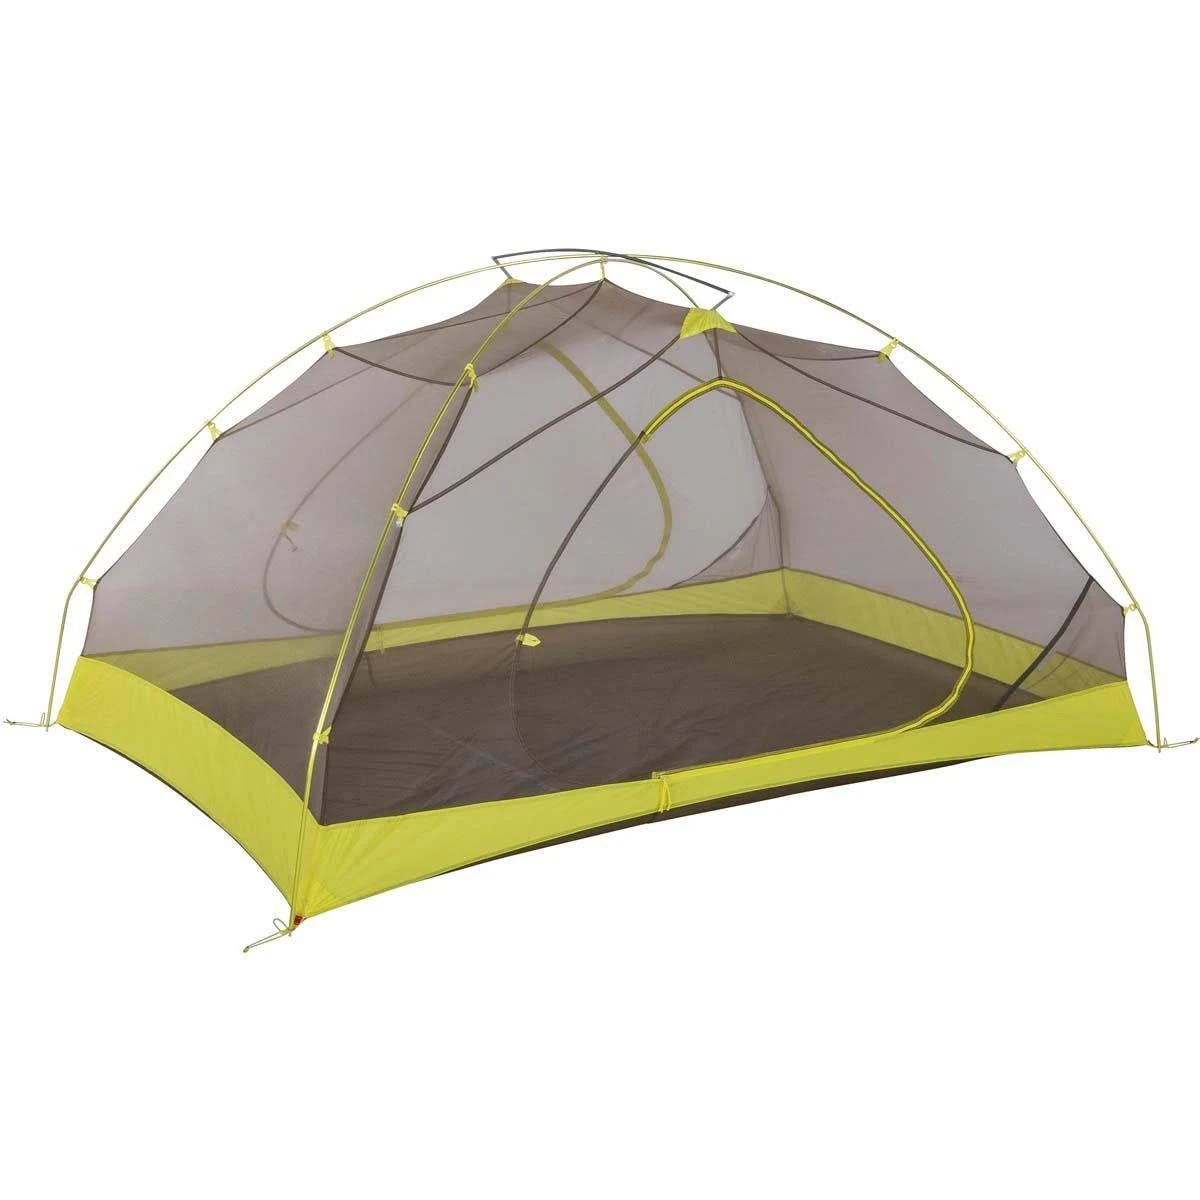 Marmot Tungsten UL Hatchback 3P Tent - 3 Person / Dark Citron/Citronelle